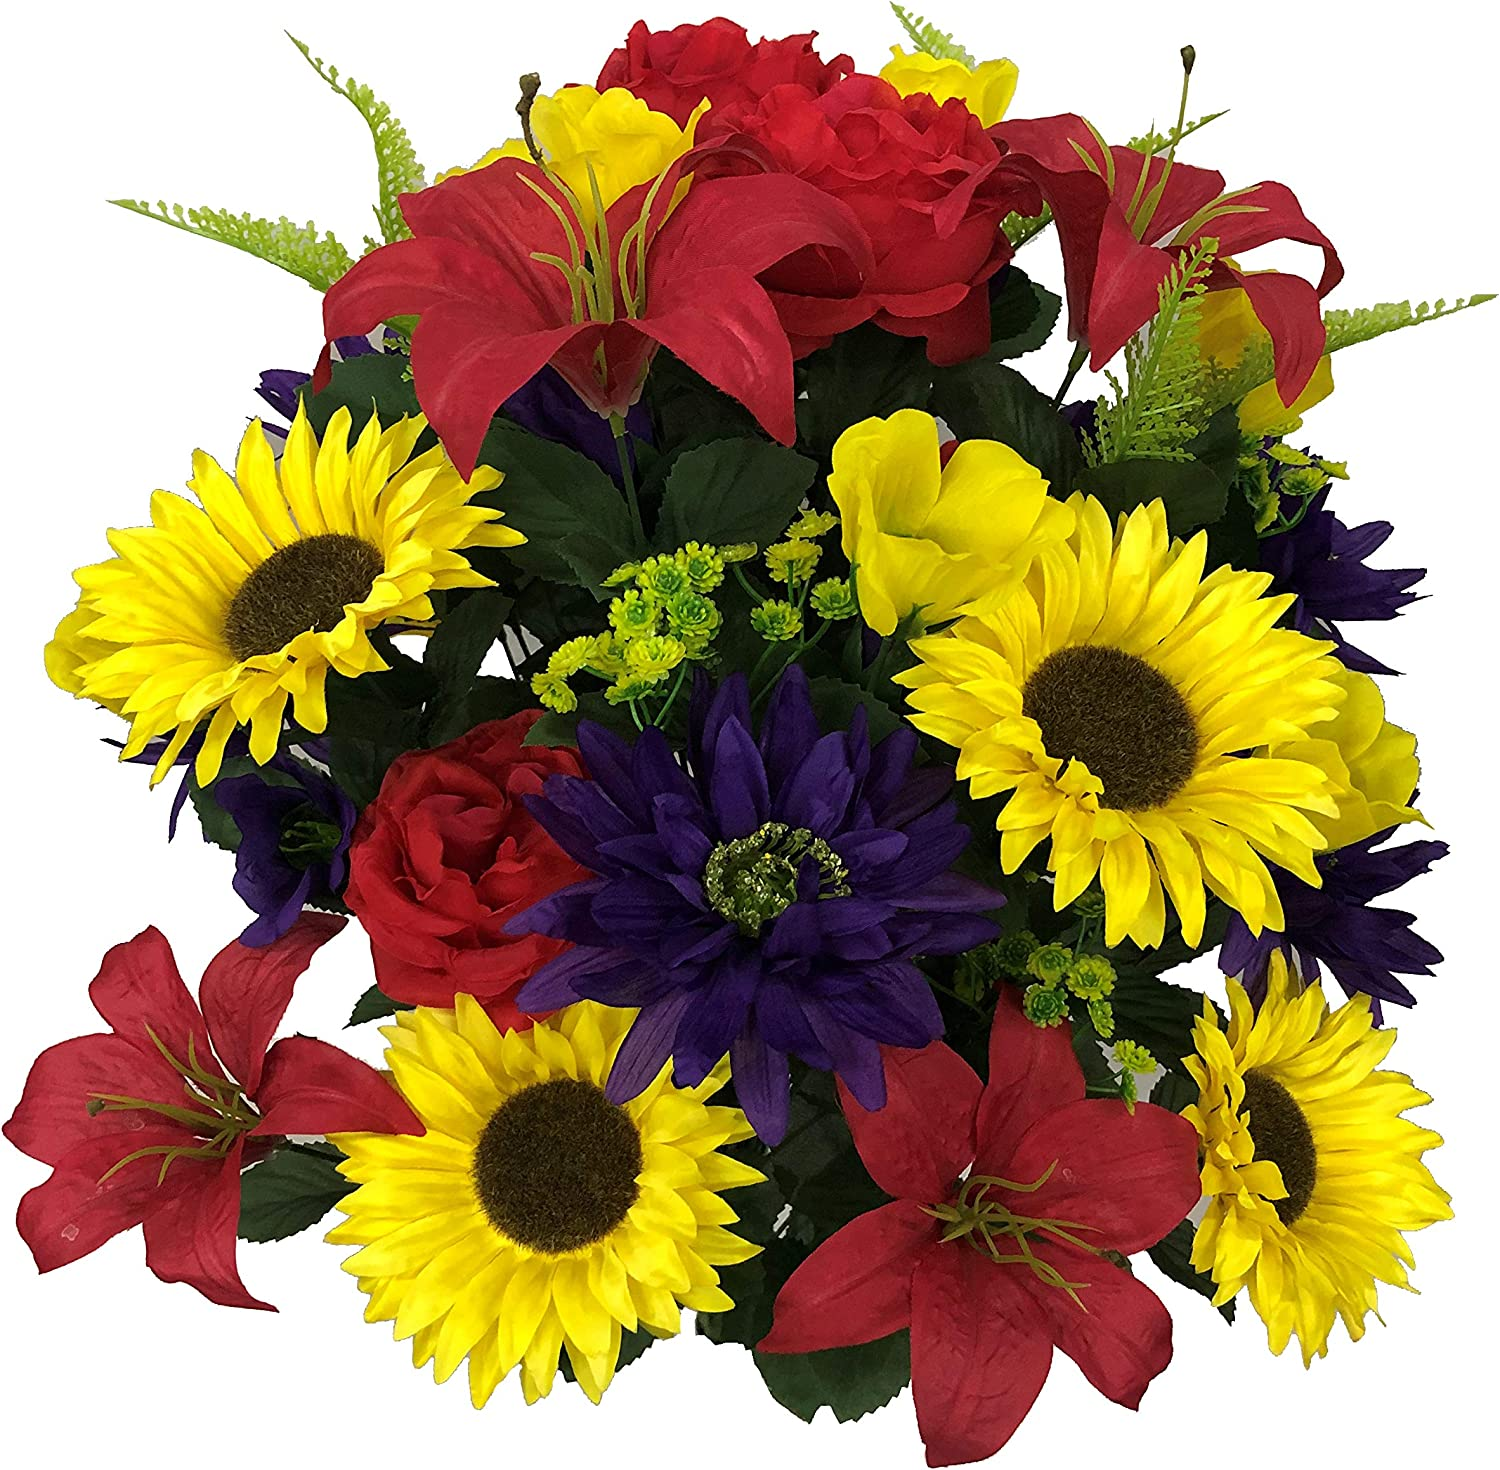 Admired By Nature Artificial Spring 36 Dahlia Mix stem New Cash special price life Sunflower